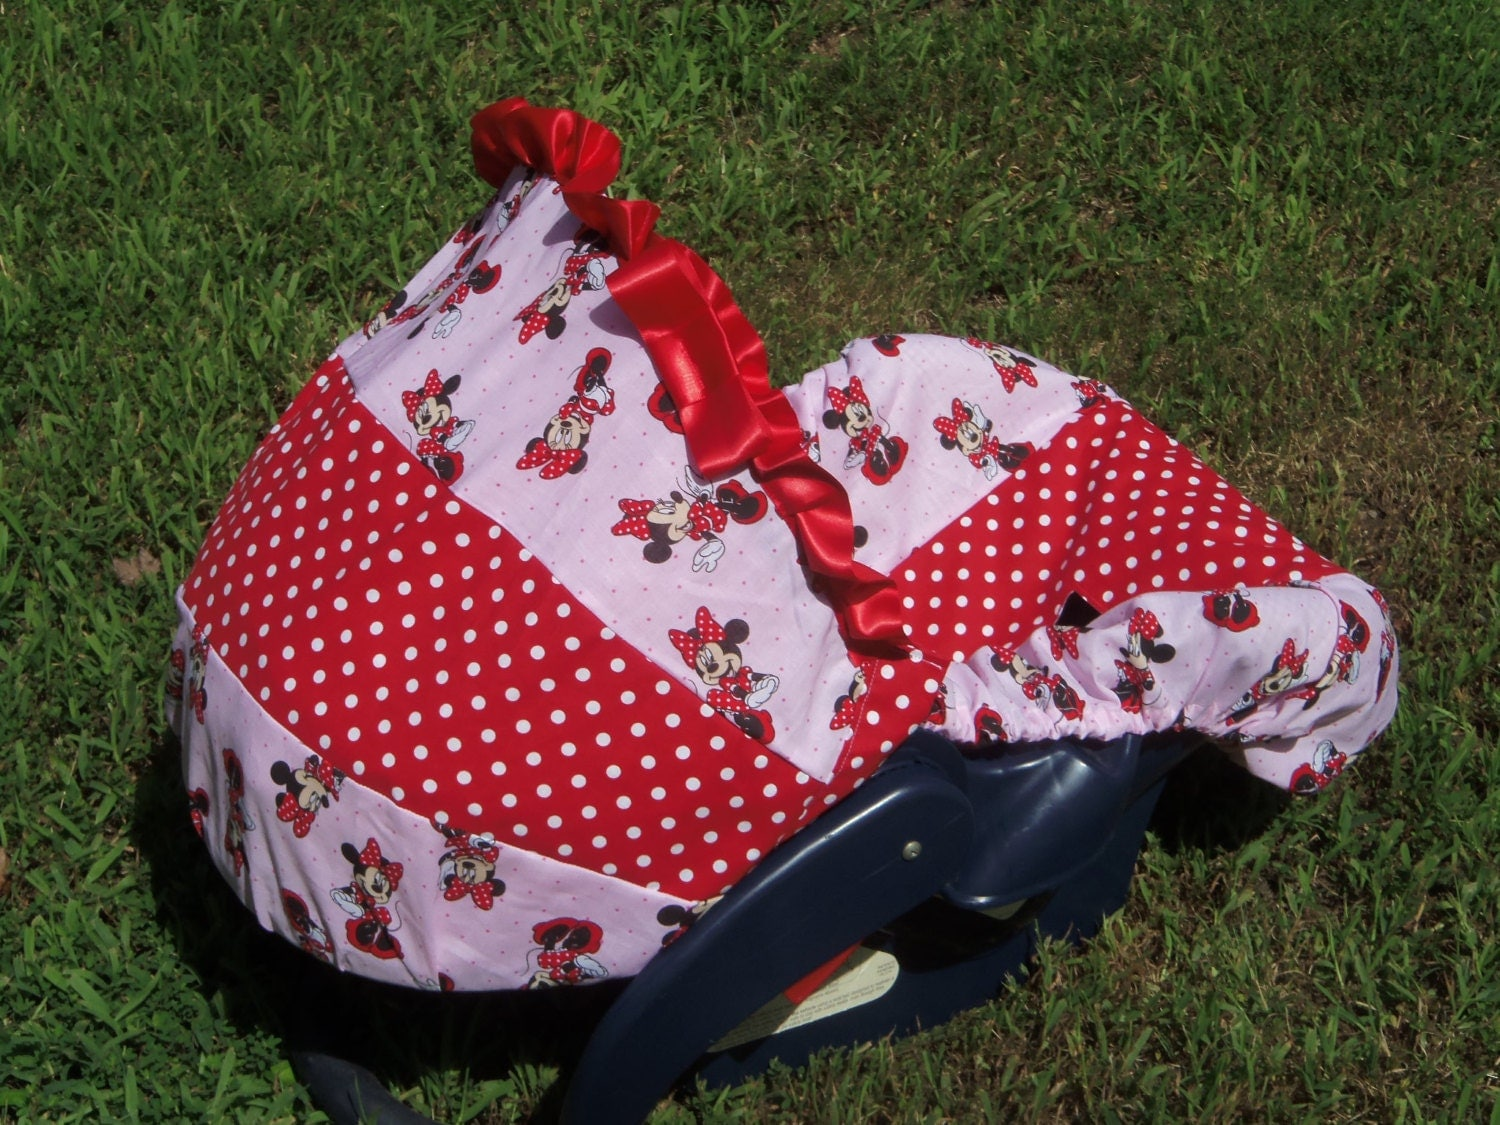 ac311d9e3 Disney Minnie Mouse baby car seat cover infant by Pinkbanditbaby2